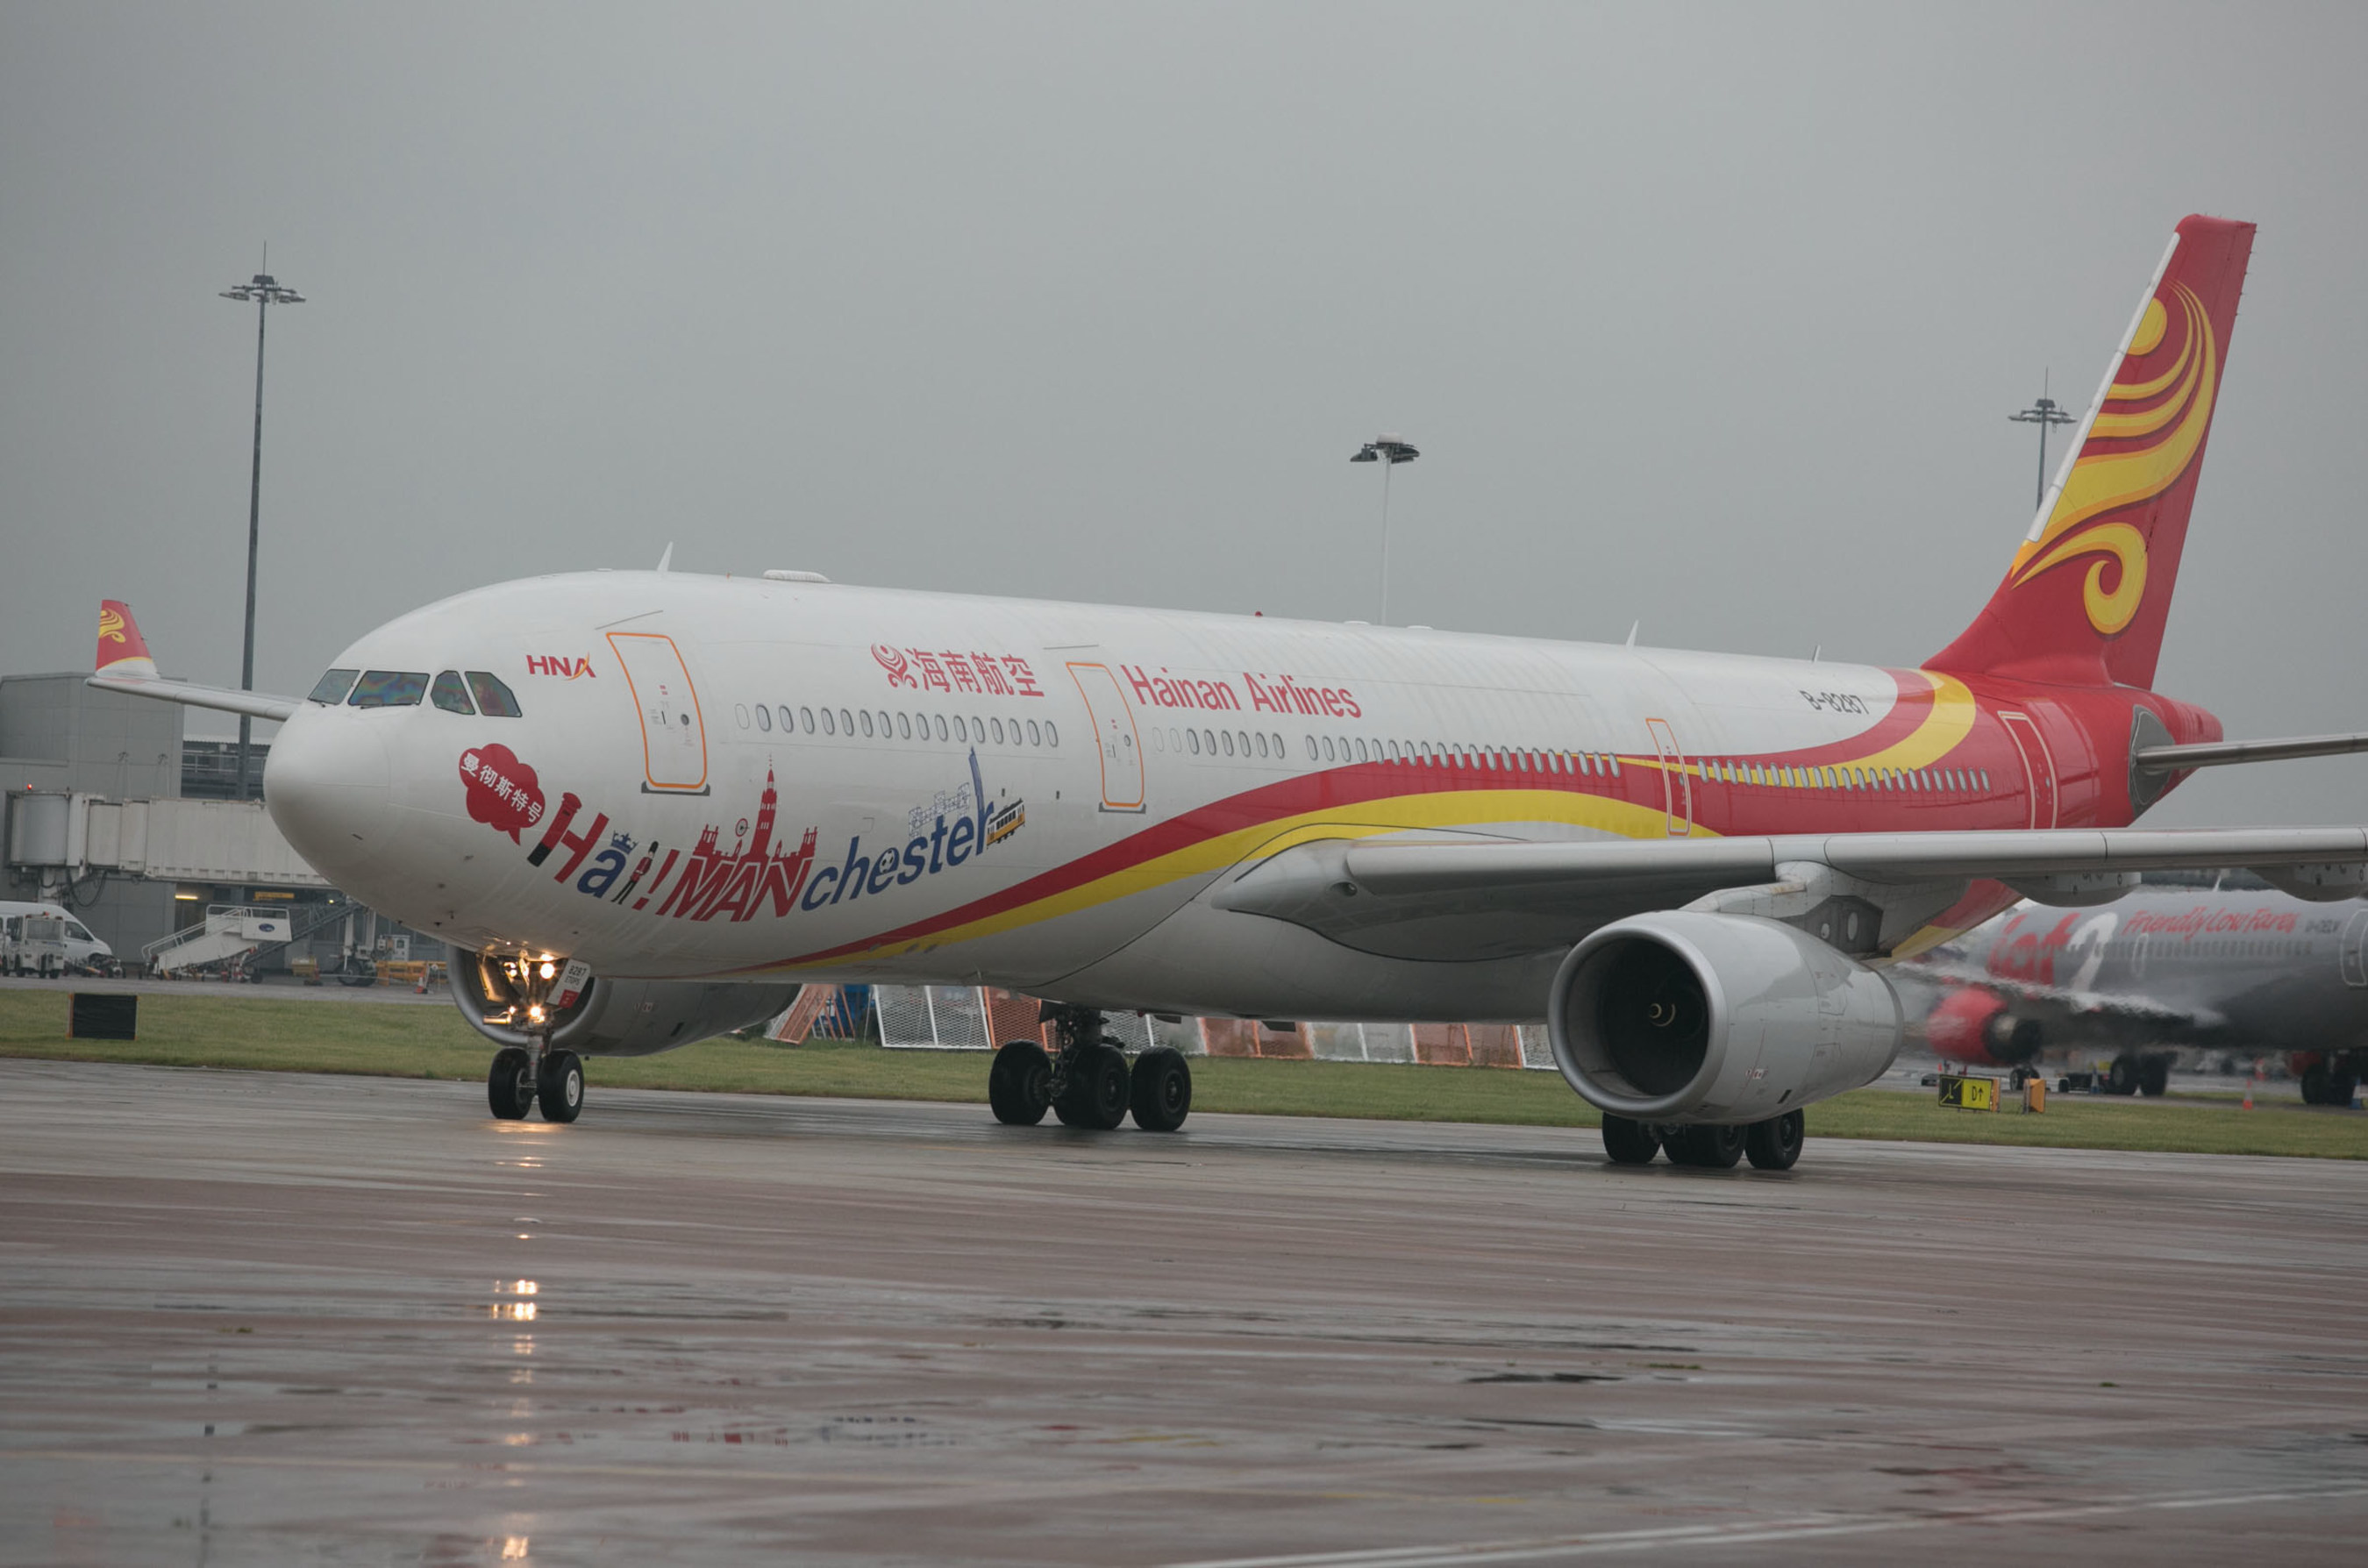 Hainan Airlines' Beijing to Manchester maiden flight successfully touches down at Manchester Airport